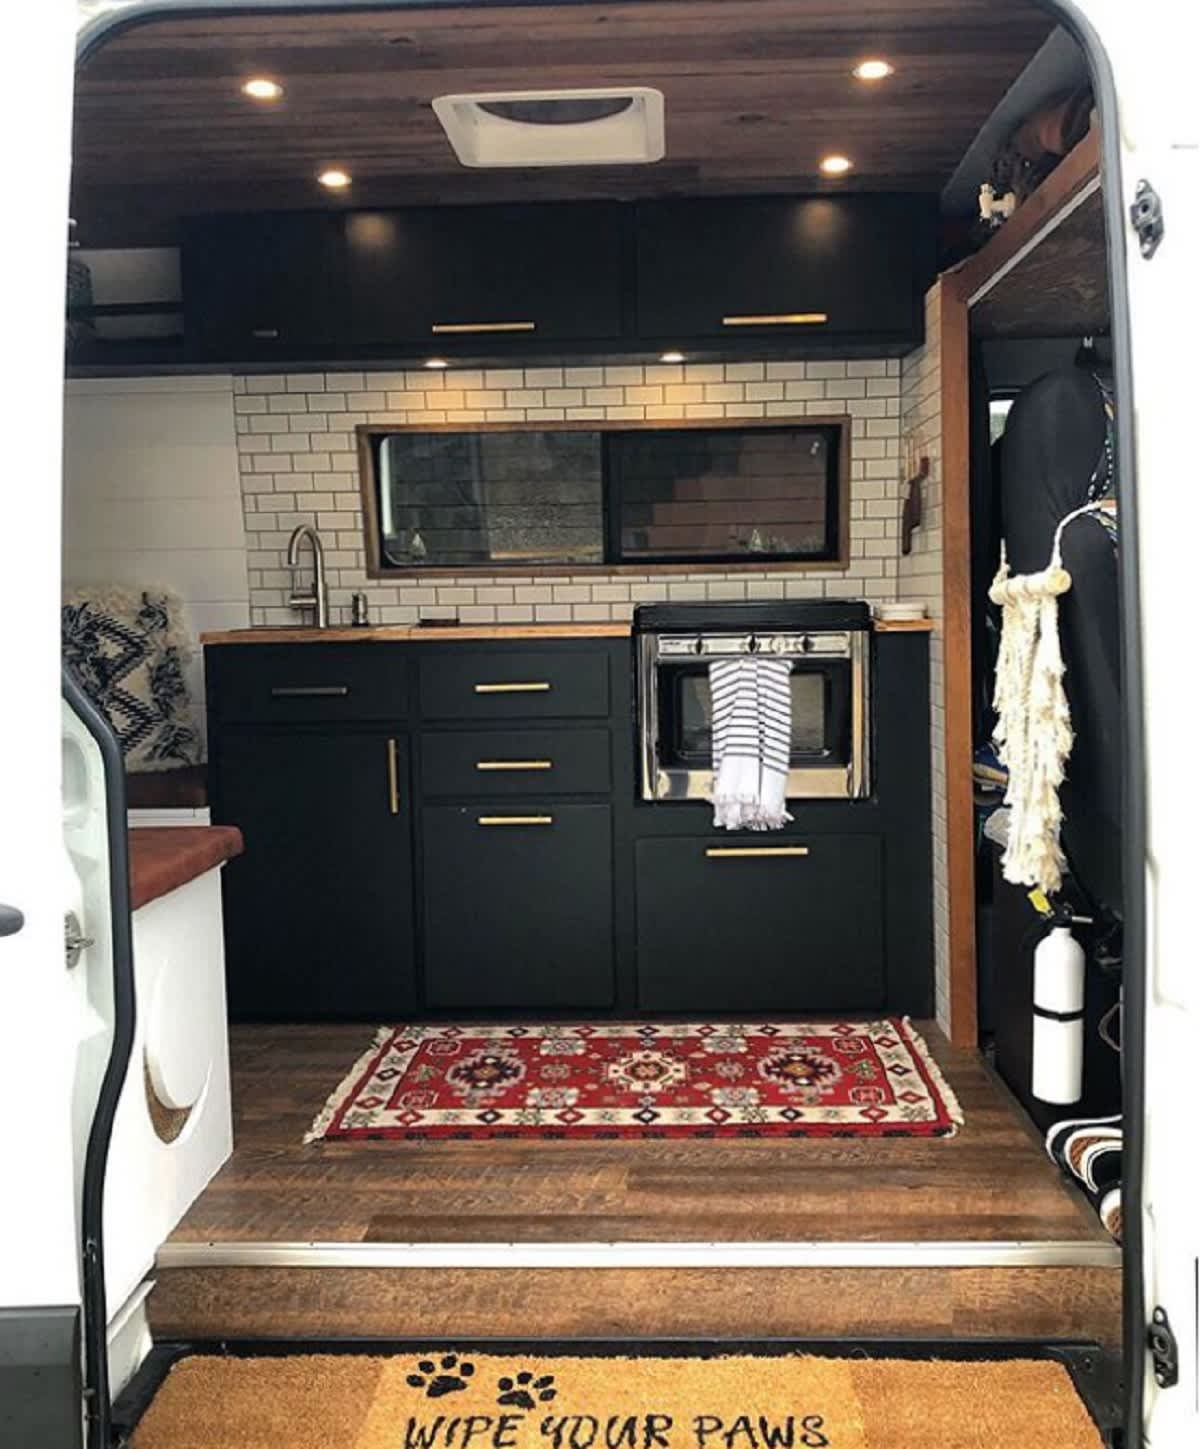 Dodge Sprinter Van Converted To Tiny House On Wheels Apartment Therapy